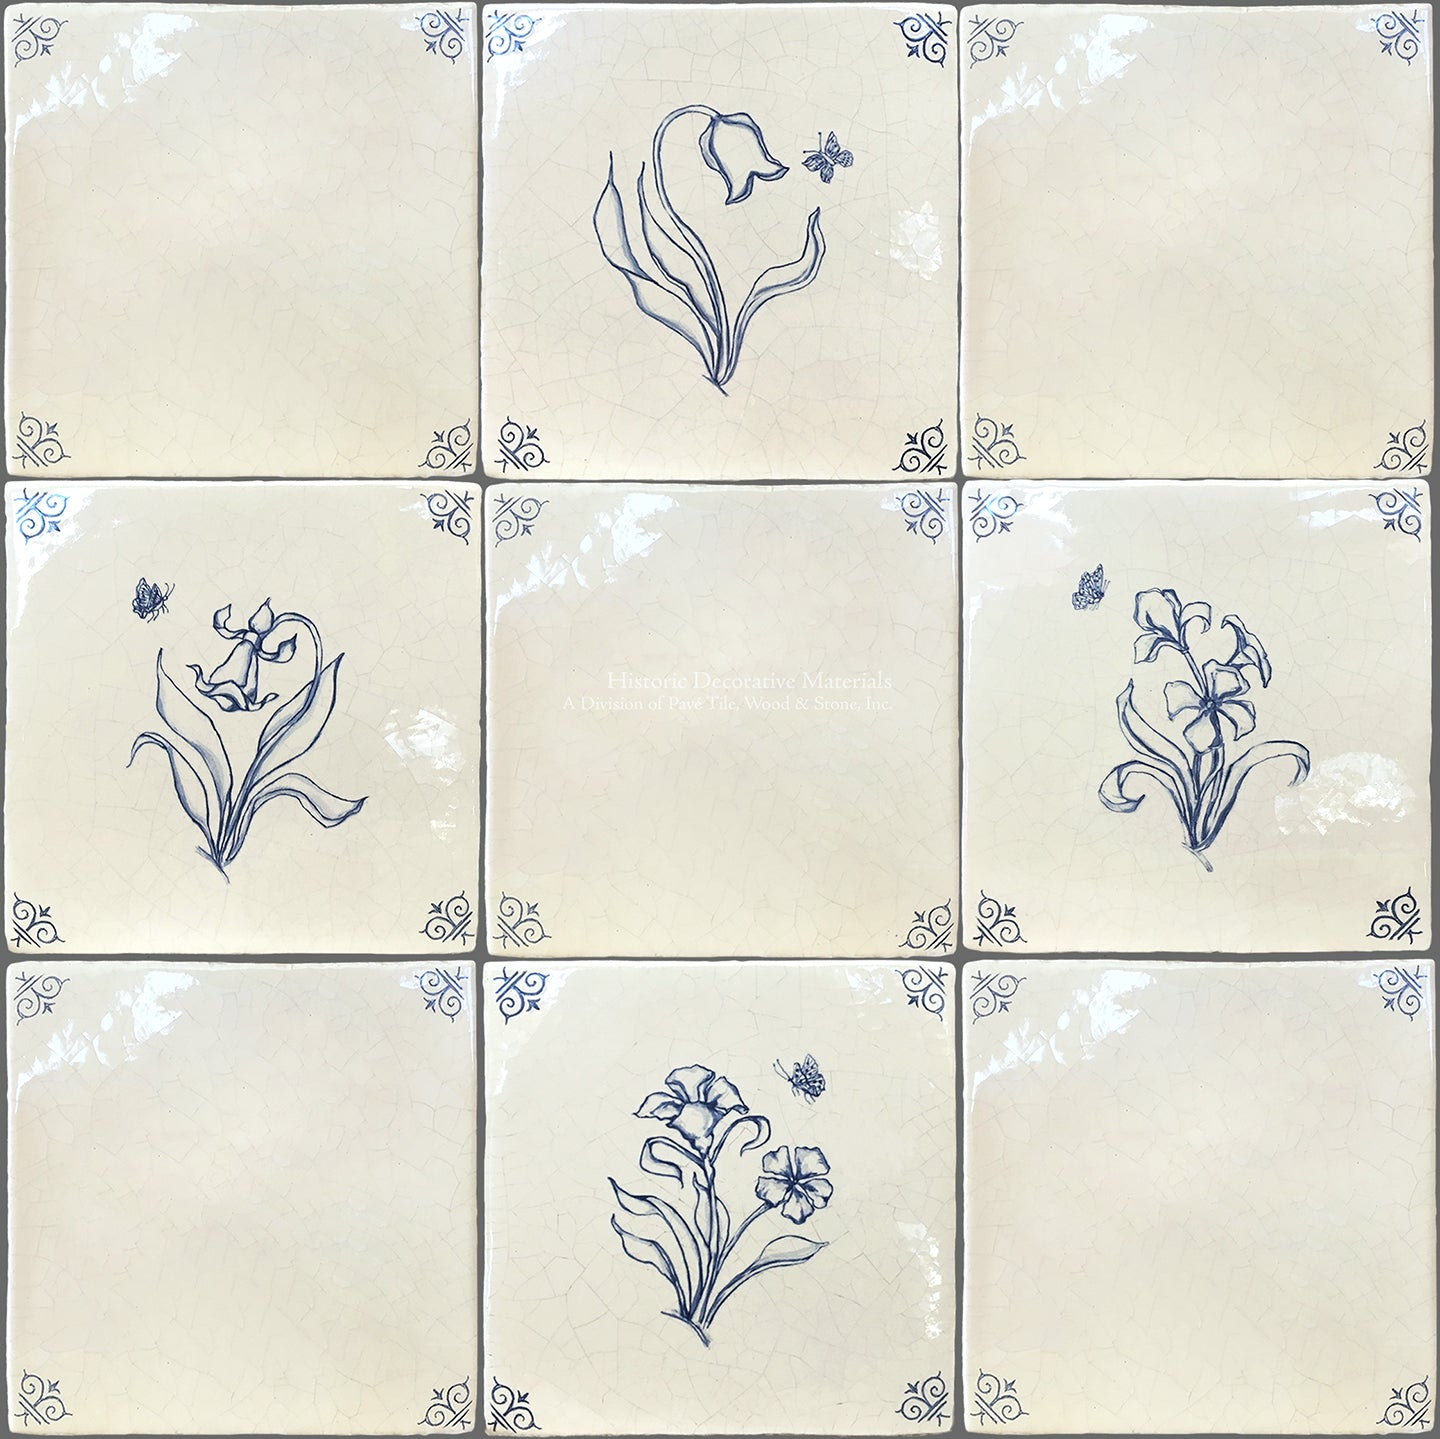 Dutch Blue Antique Delft Tiles are hand painted Delft Tiles that are for luxury, farmhouse and old world historic interiors that interior designers chose for interior design